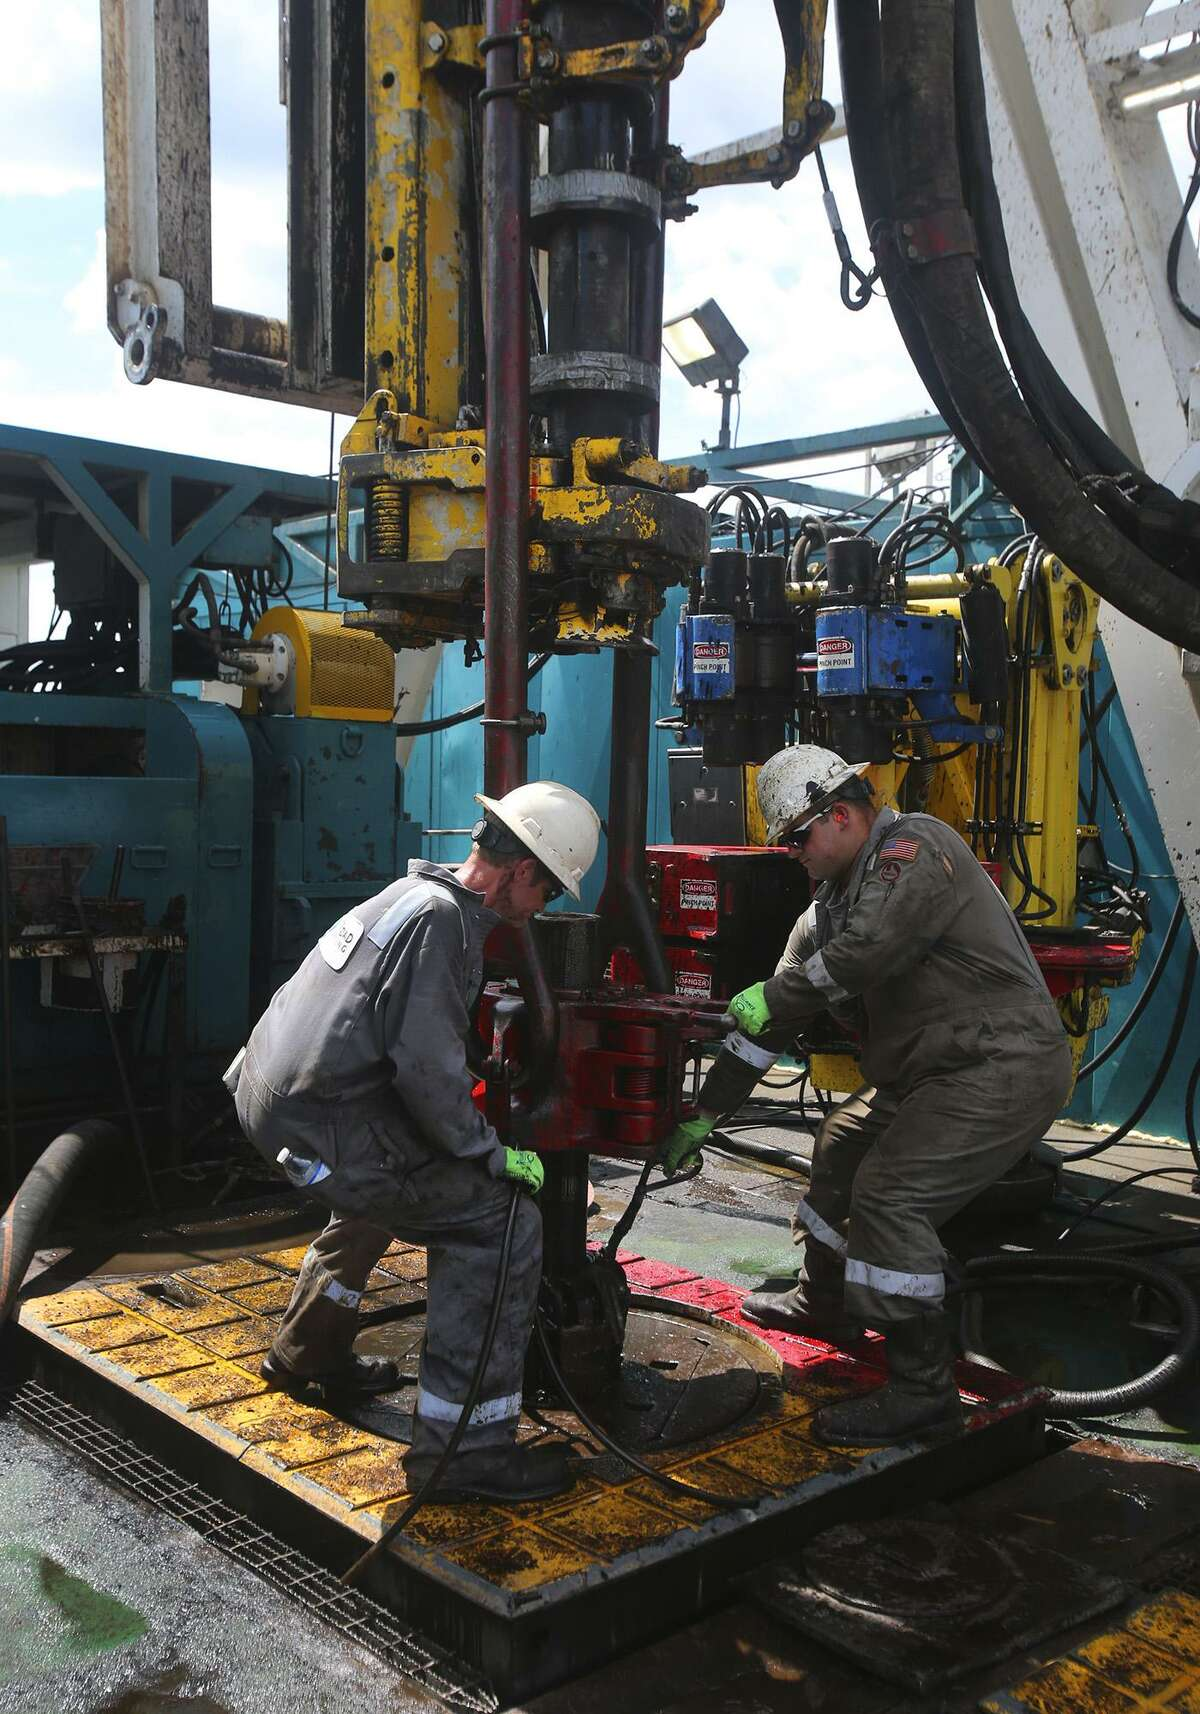 Floor hands work Monday June 27, 2016 at Abraxas Petroleum's Bullseye 101H well in Atascosa County near Jourdanton, Texas. Drilling activity picked up slightly this week in South Texas' Eagle Ford Shale and in Oklahoma while the nation's overall rig count stayed relatively flat.